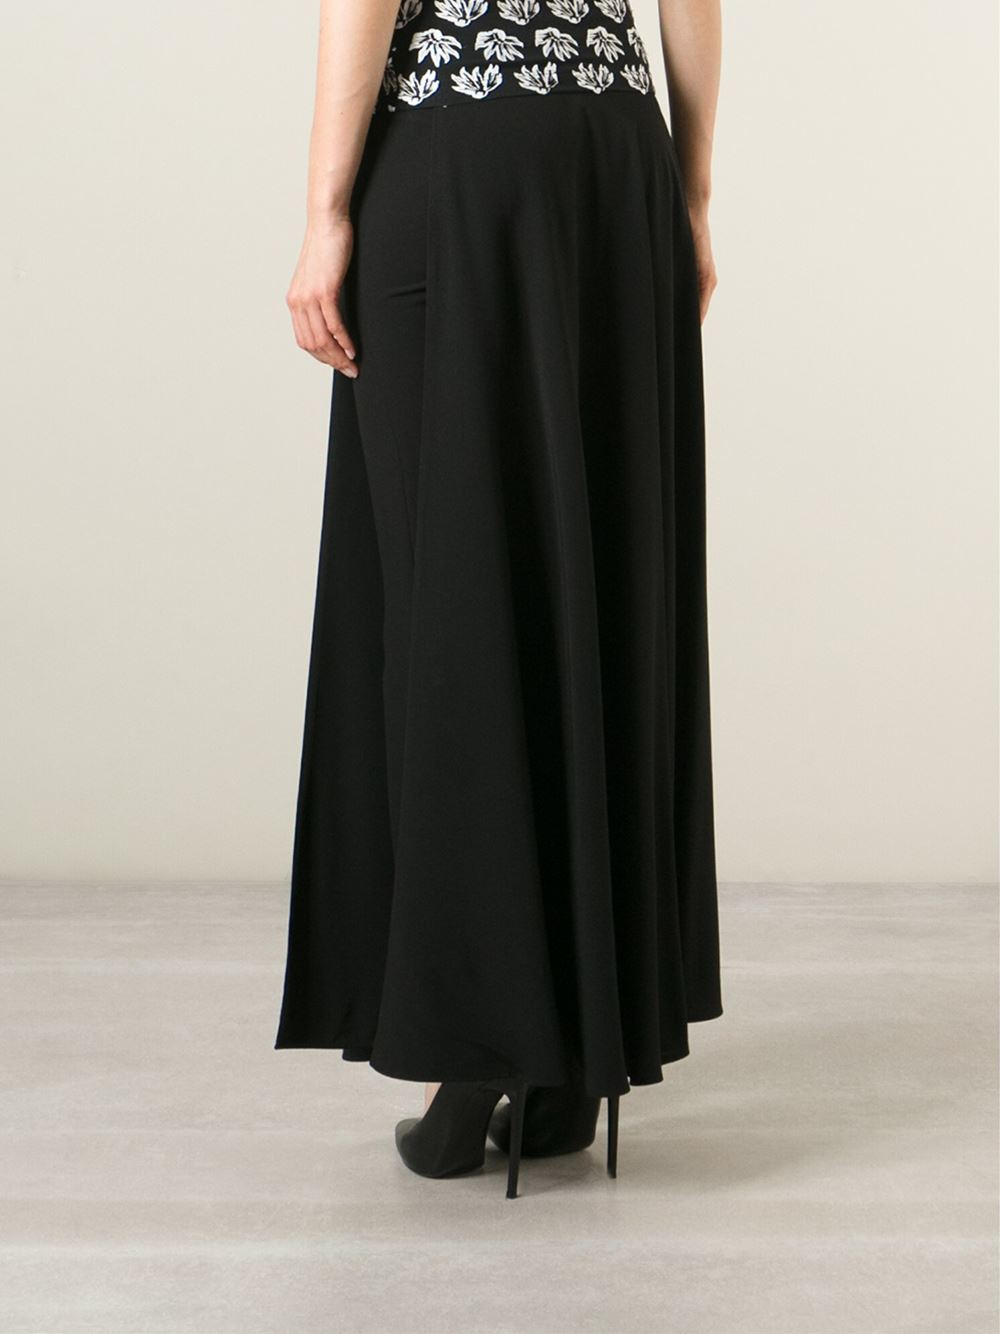 jean paul gaultier draped maxi skirt in black save 60